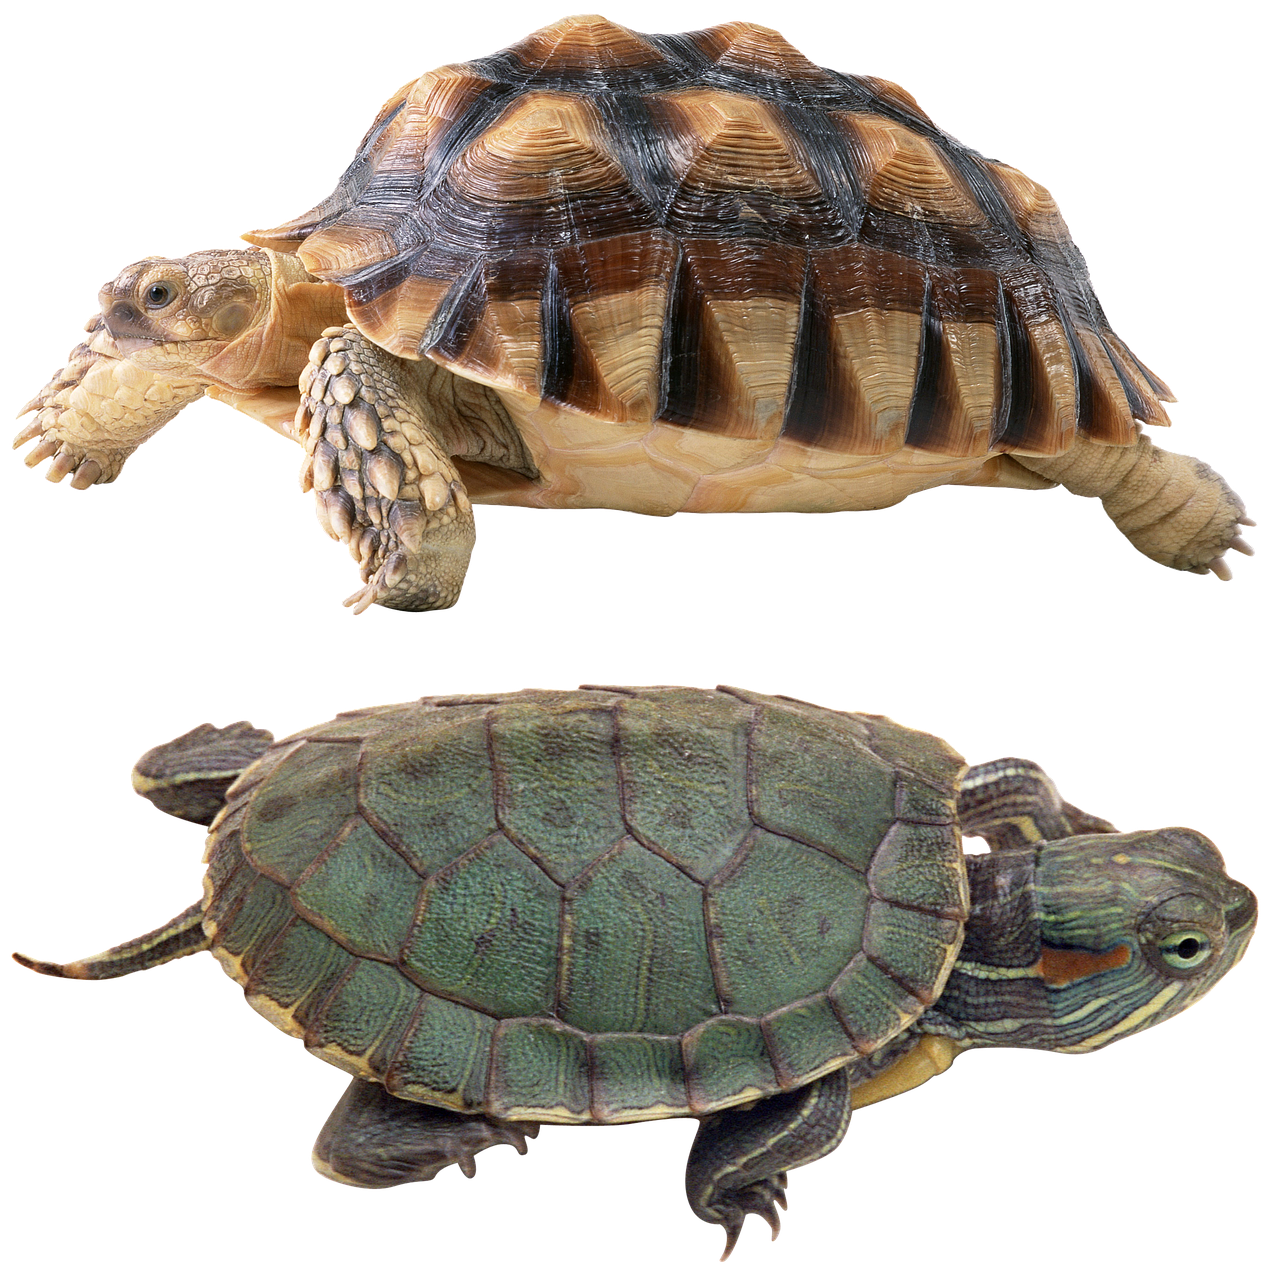 Turtles protestudo bessarabica from the late miocene of ukraine